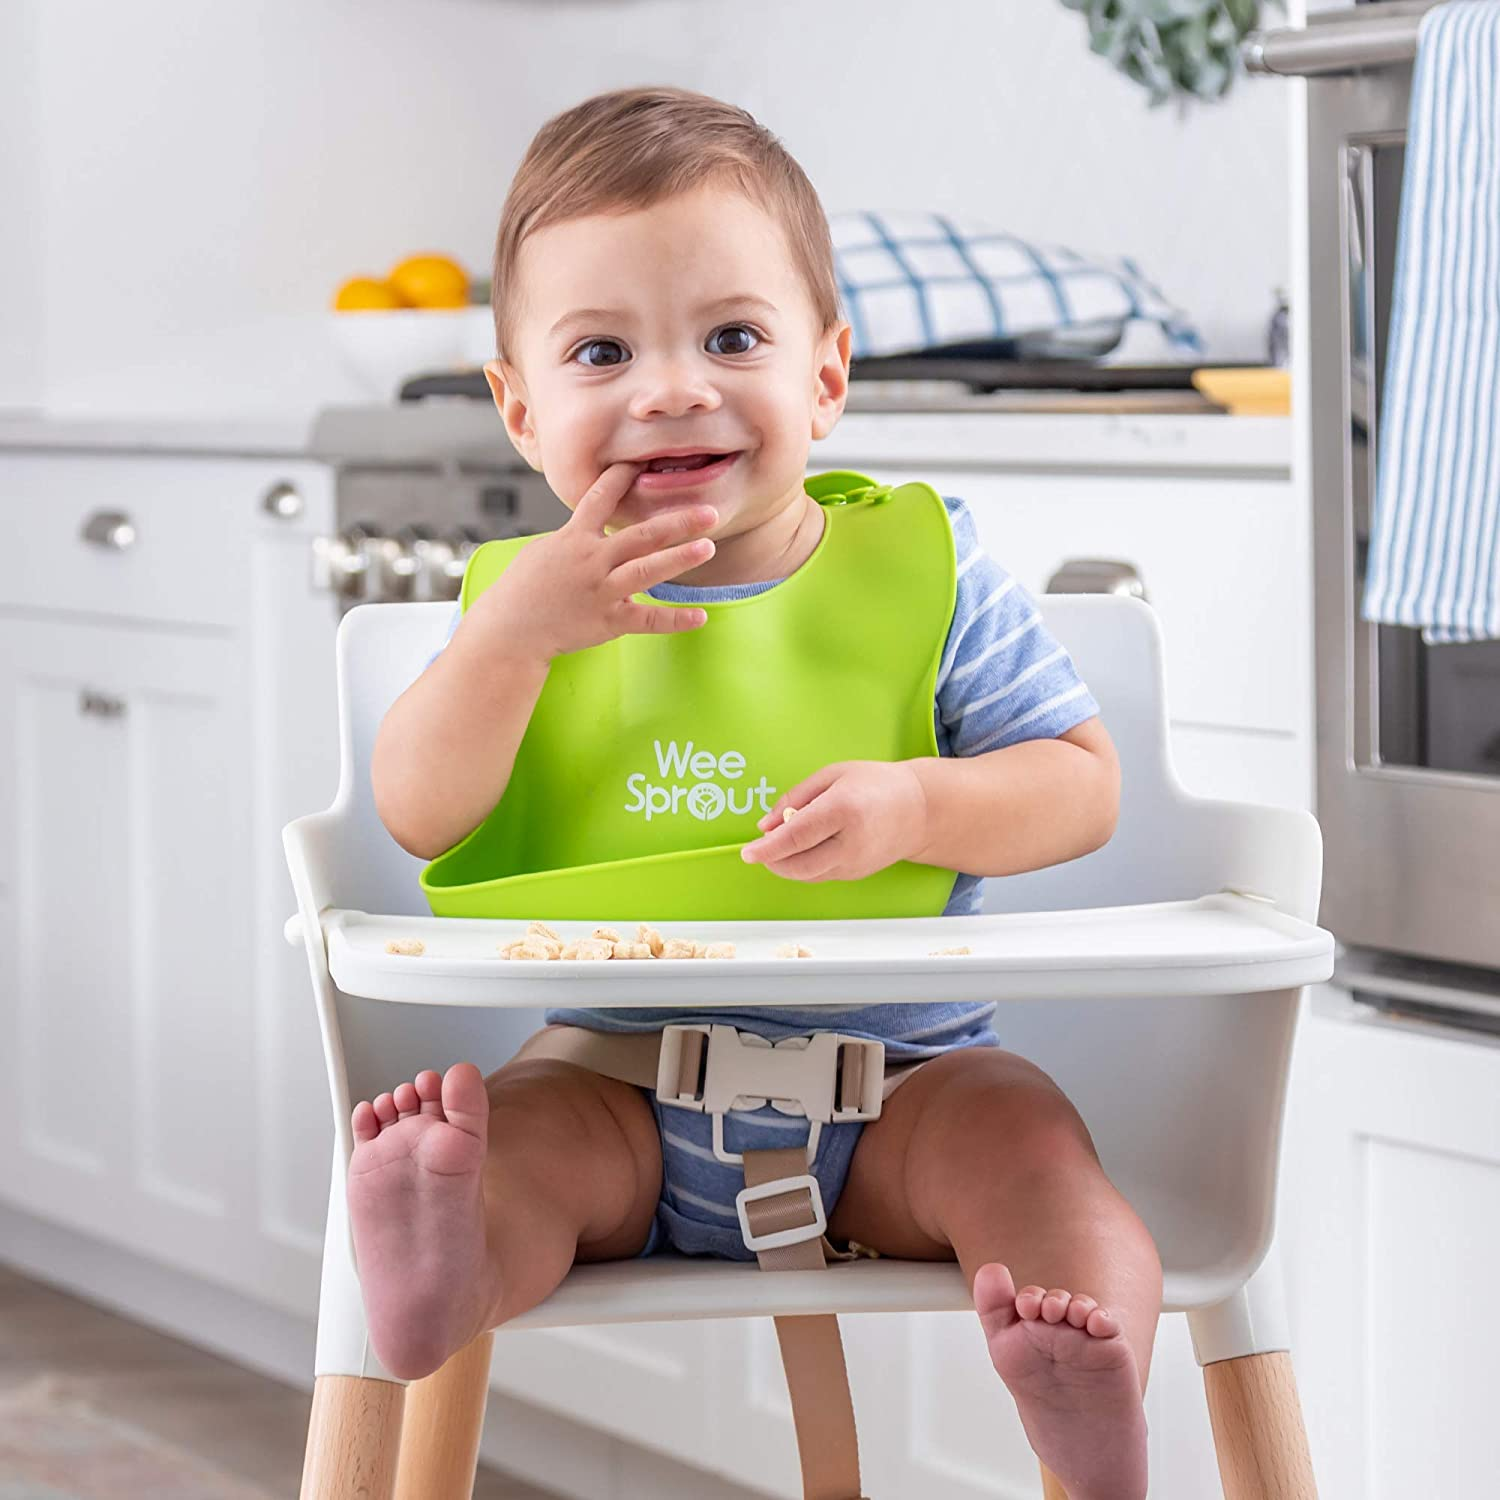 Modern Wood Design Adjustable Footrest//Legs Removable Tray//Armrest 3-in-1 High Chair//Booster//Chair Easy to Assemble WeeSprout Wooden High Chair for Babies /& Toddlers Grows with Your Child